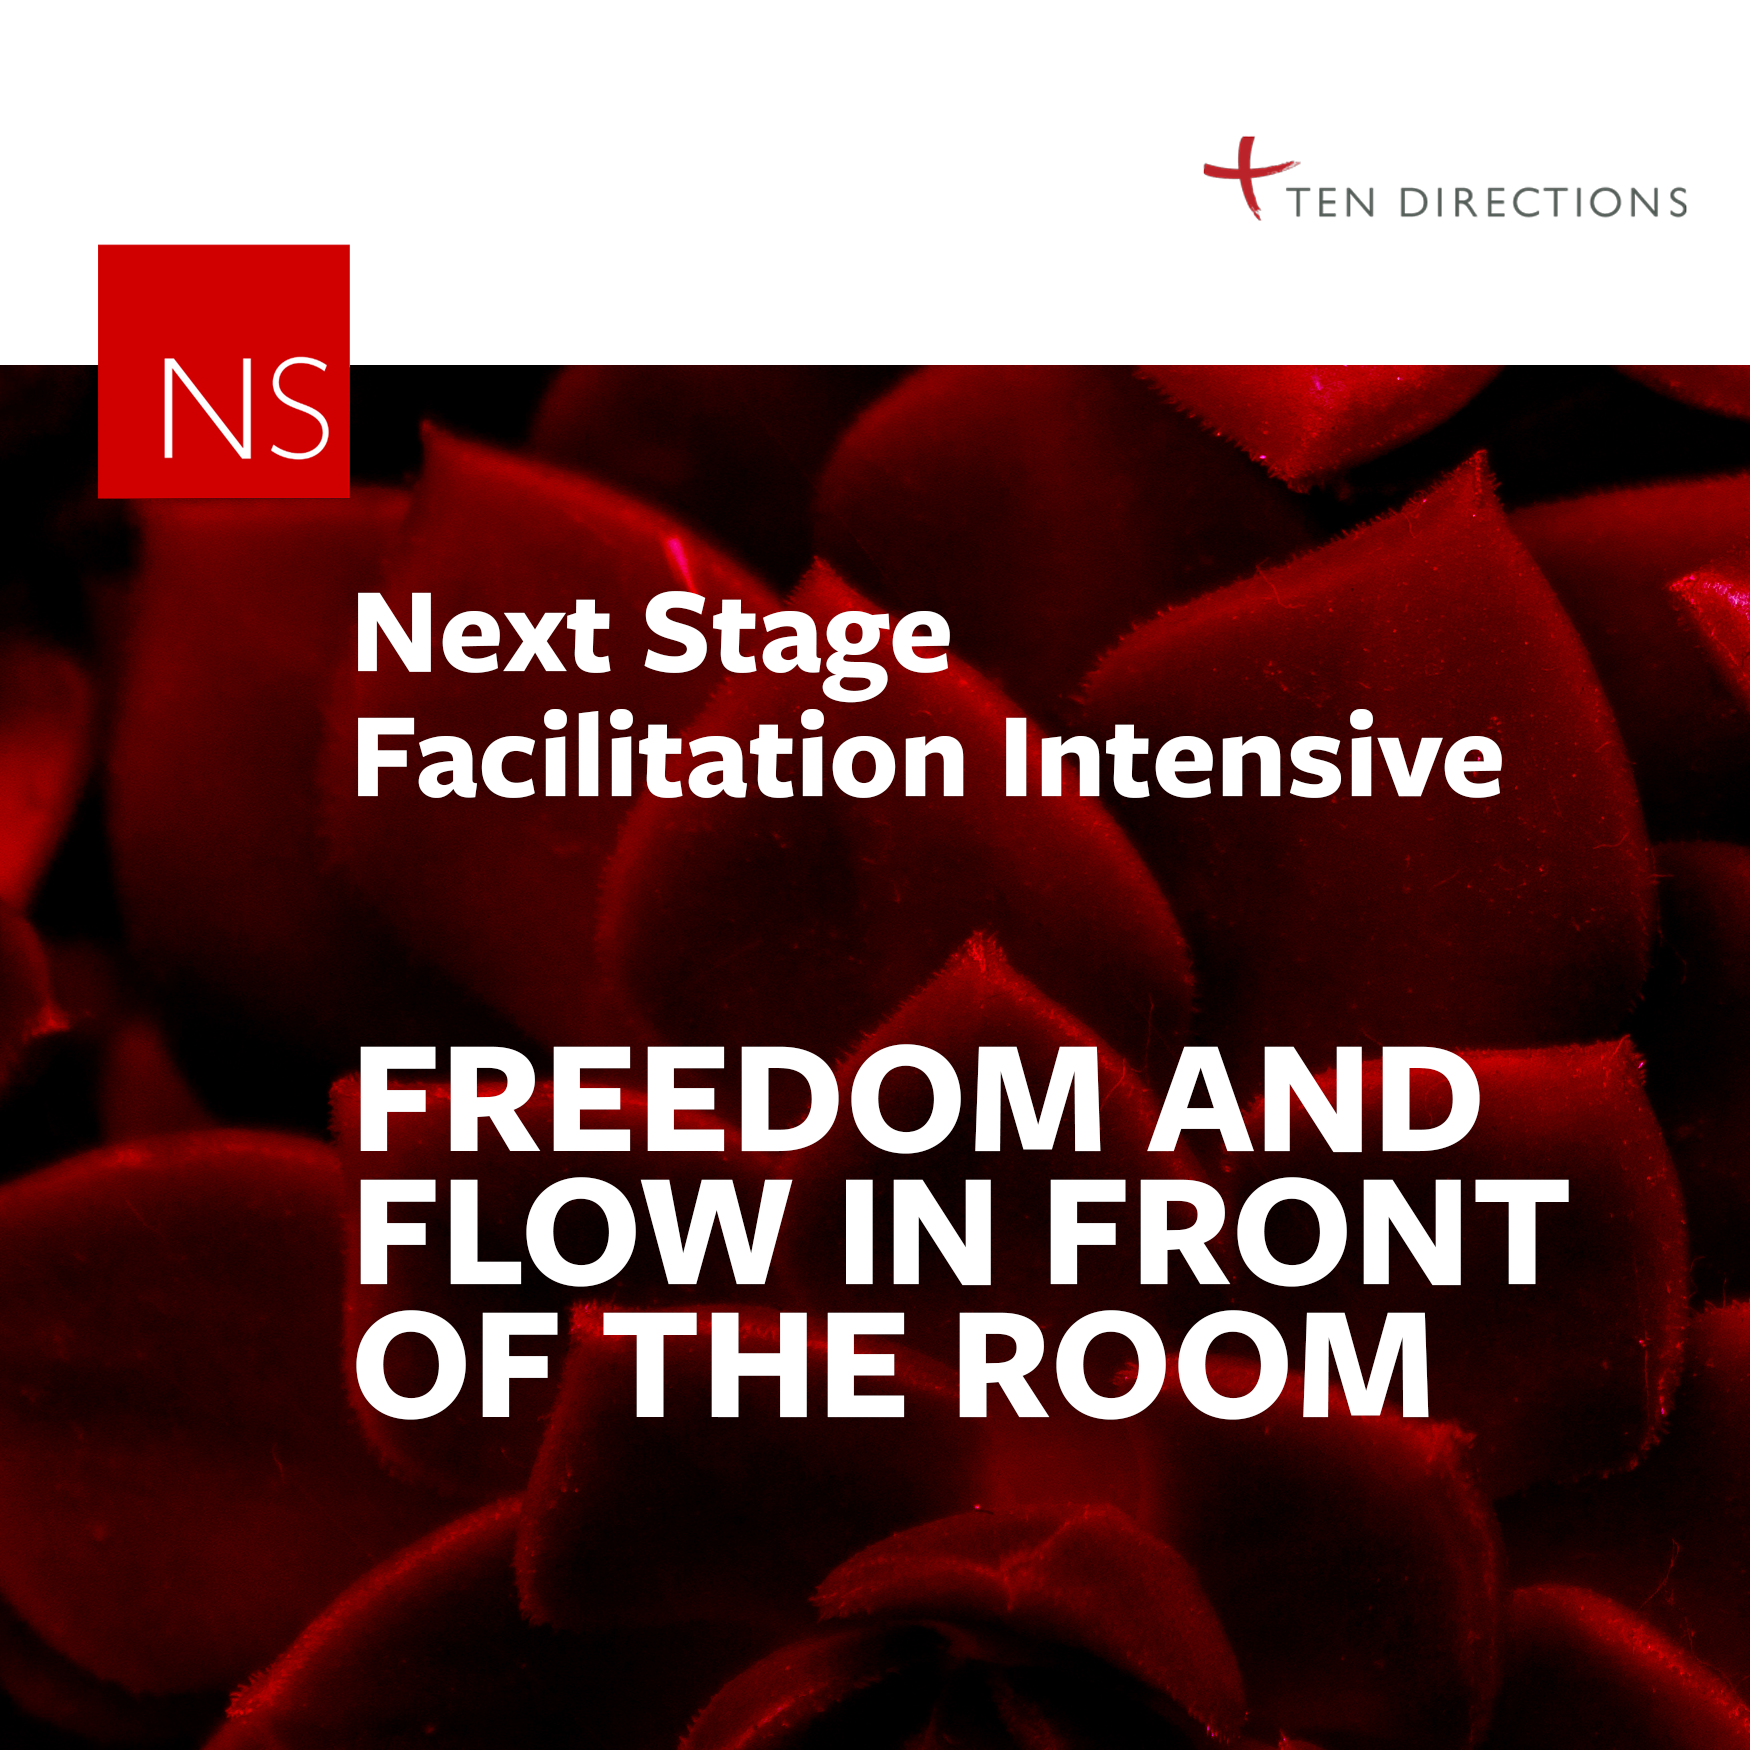 Next Stage Facilitation